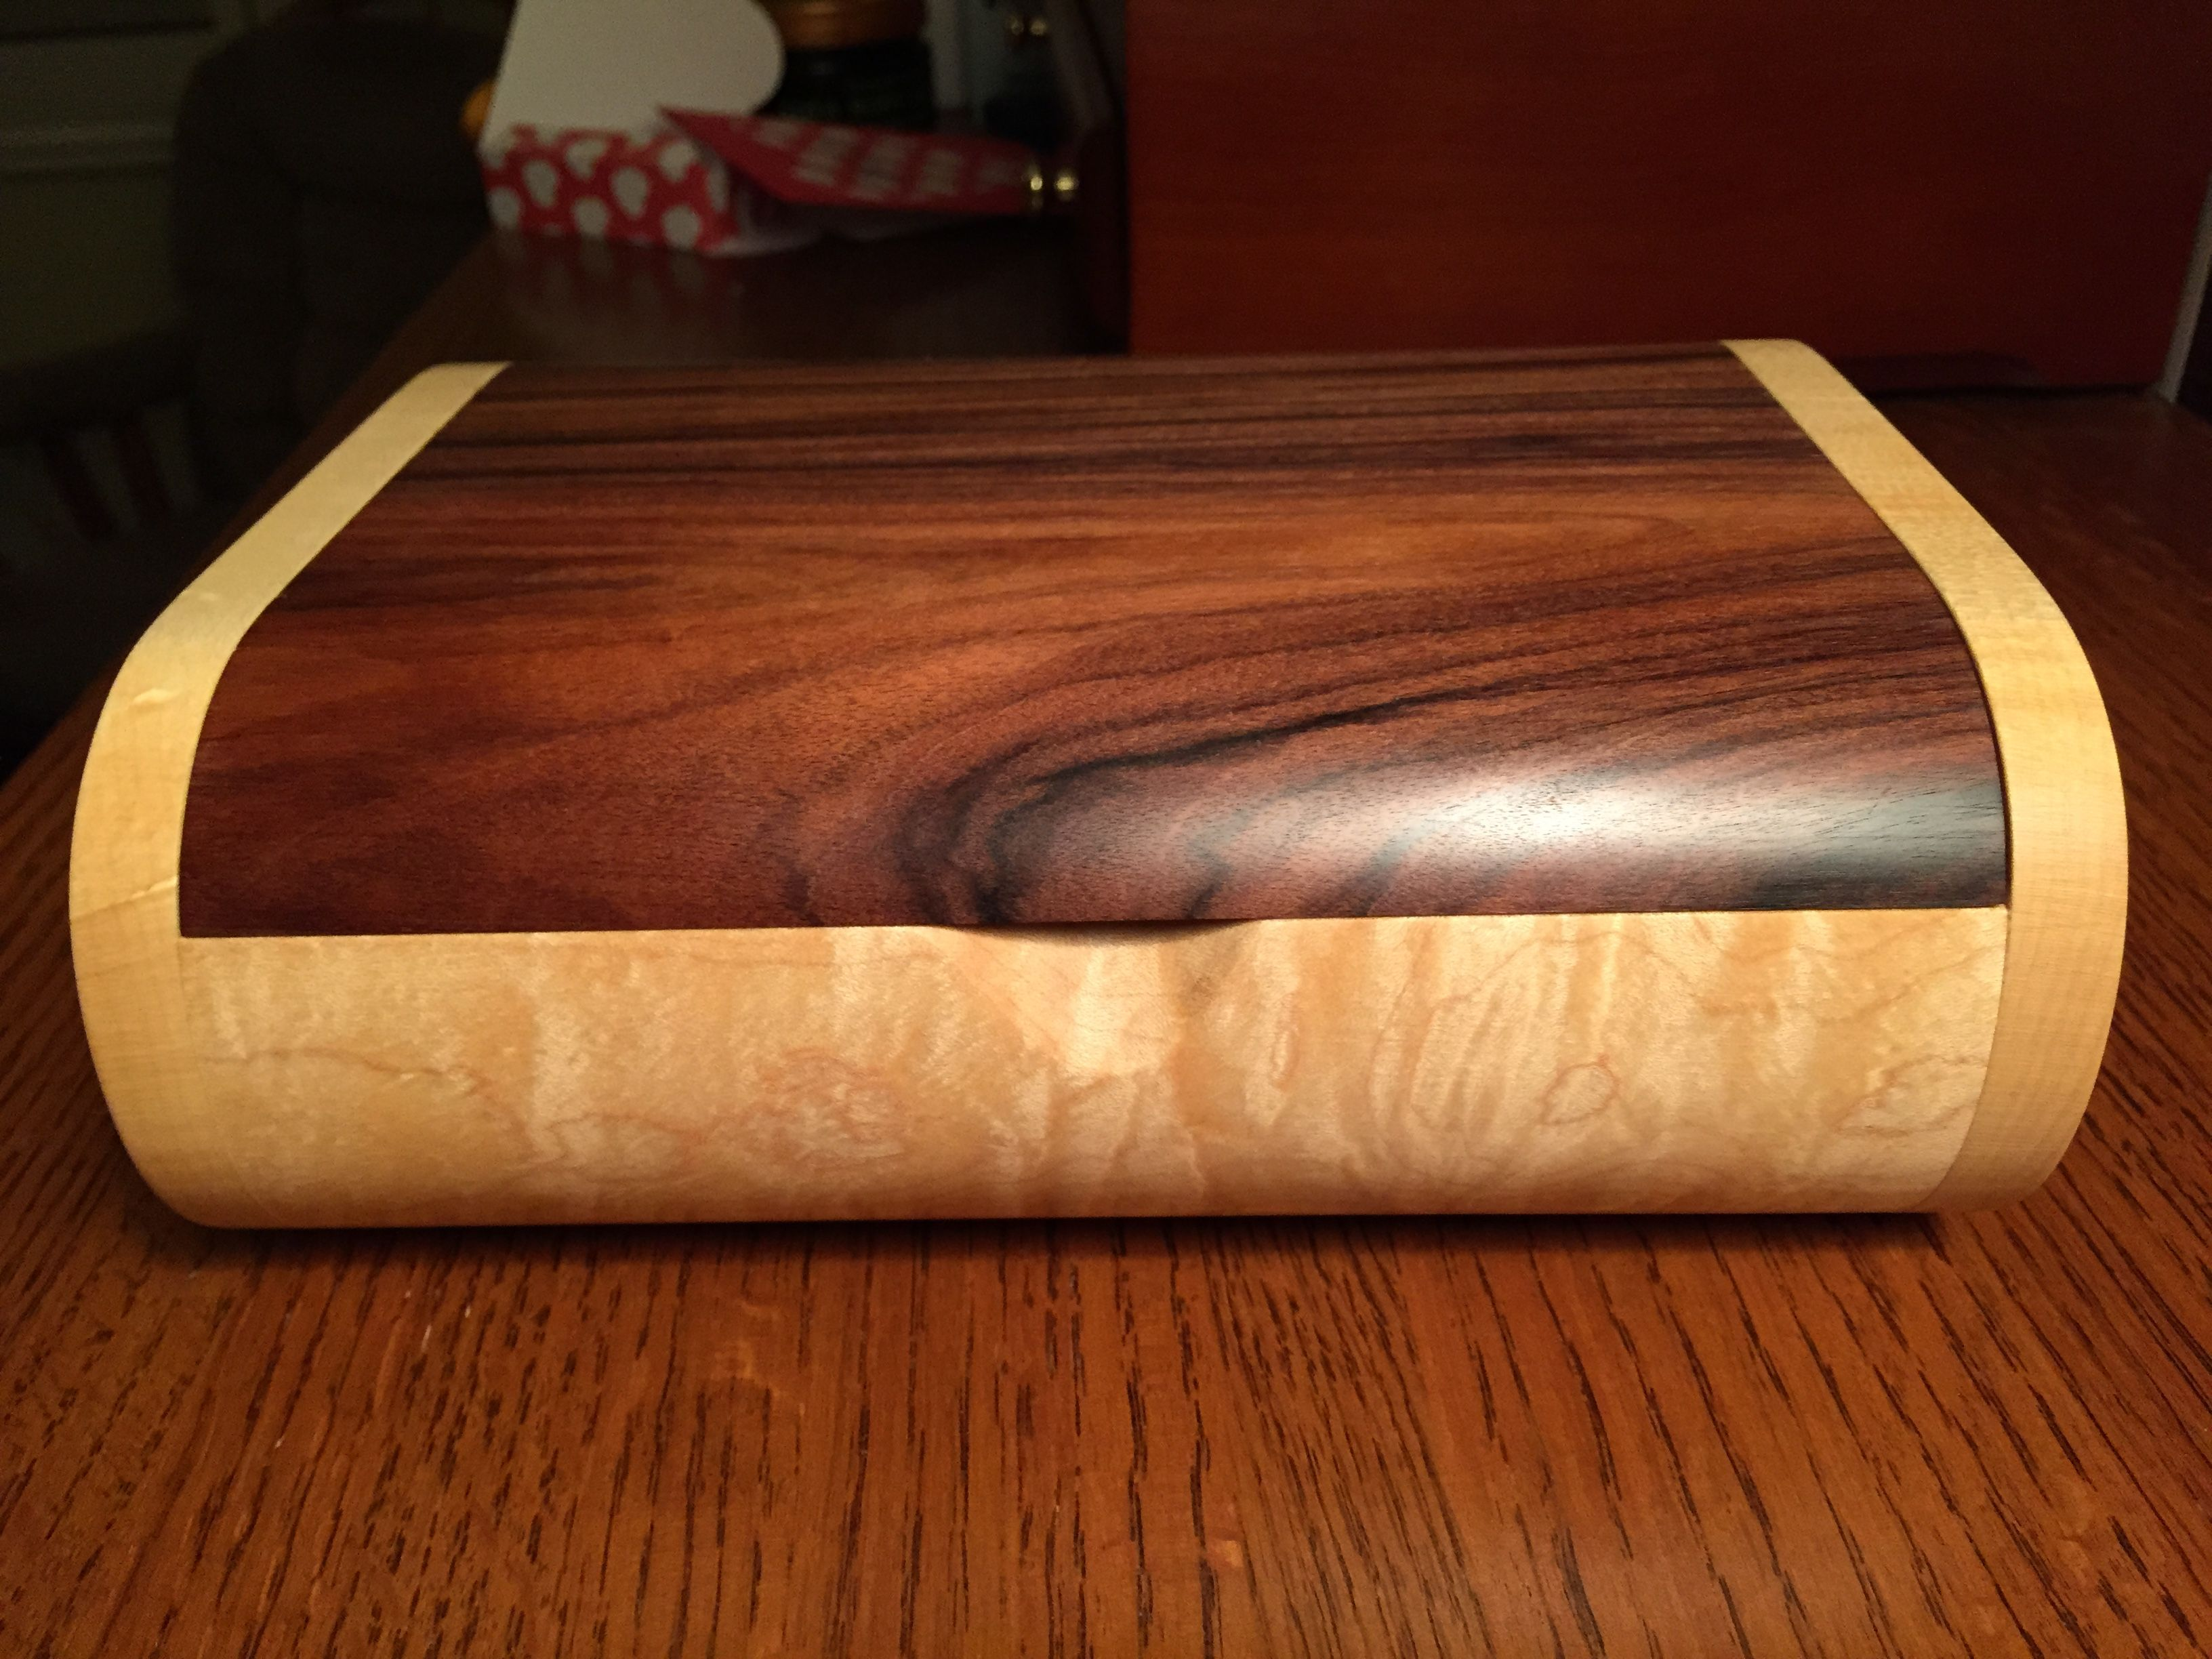 17 Awe Inspiring Wood Working Projects Logs Ideas In 2020